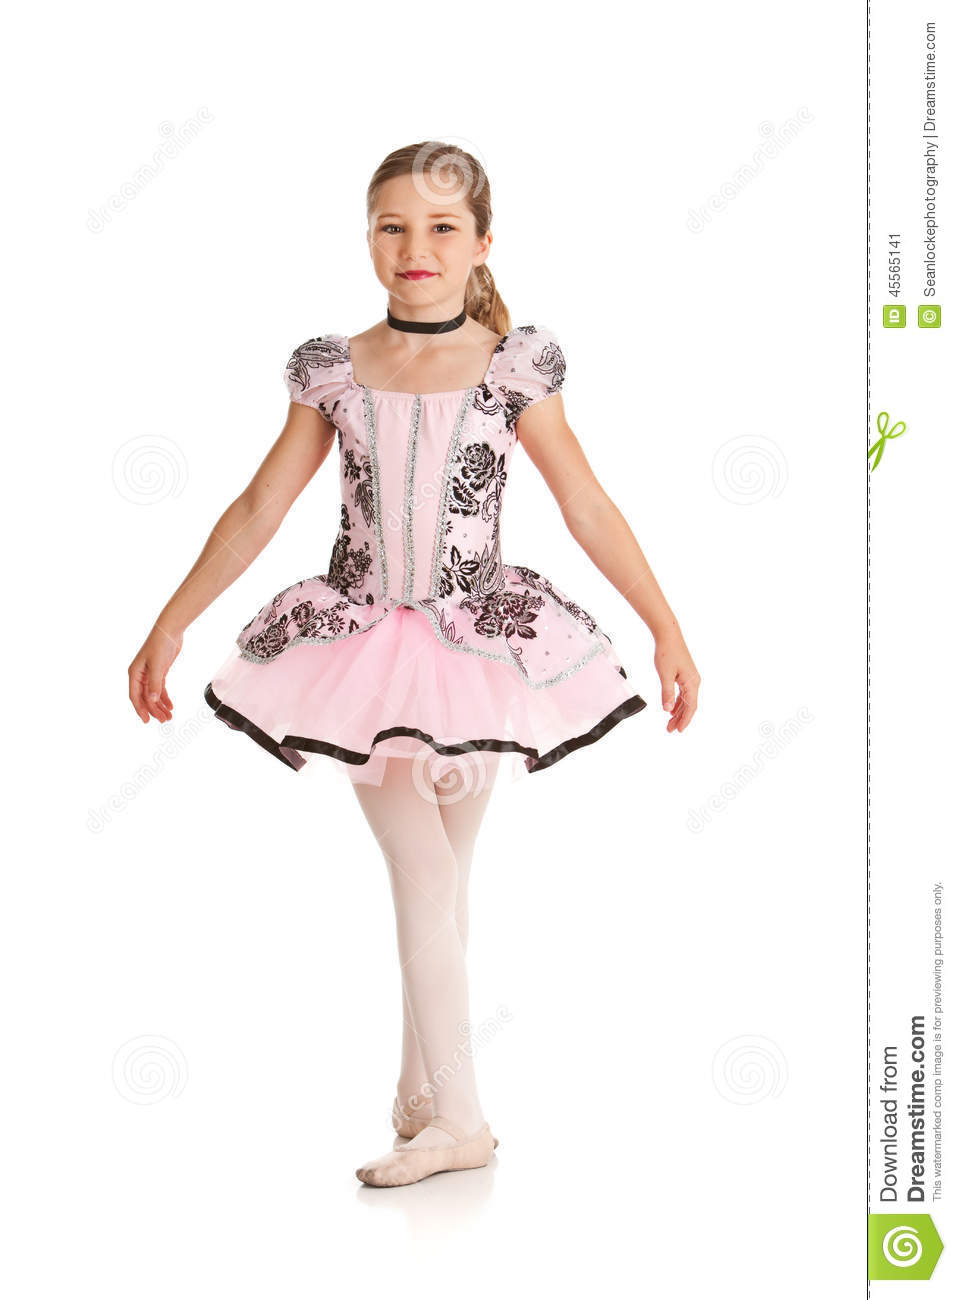 Cute Dance Outfits Dancer Girl Dressed Ballet Costume Isolated White Series Cute Young Caucasian ...